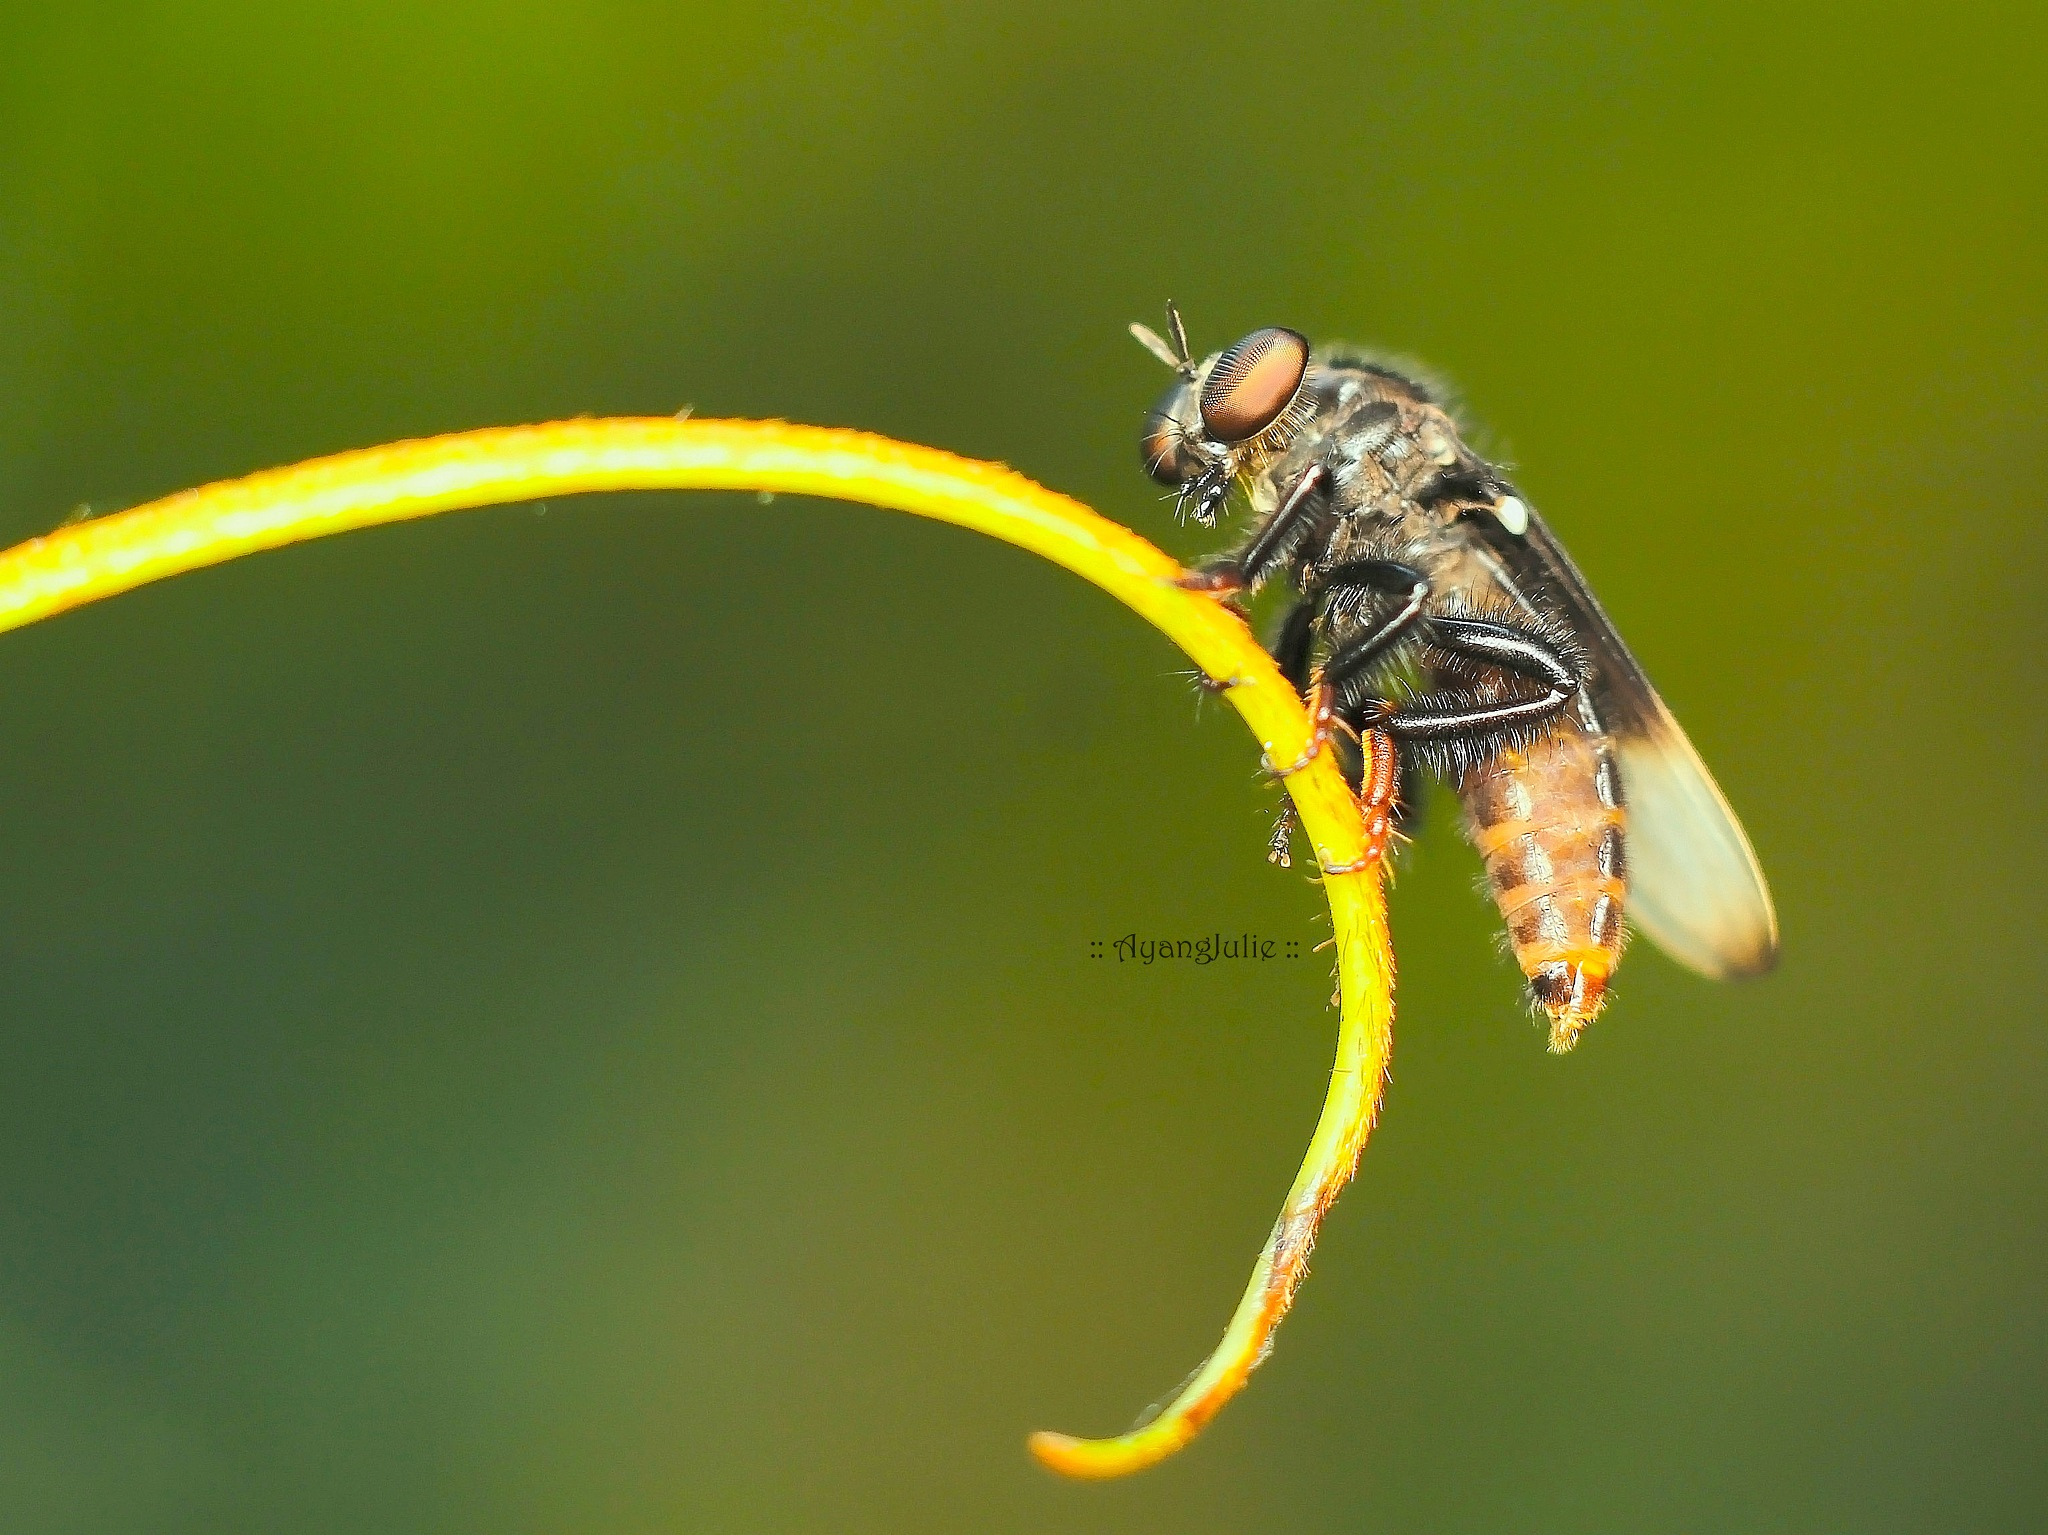 Asilidae the robber fly by Ayang Julieana Mohamed